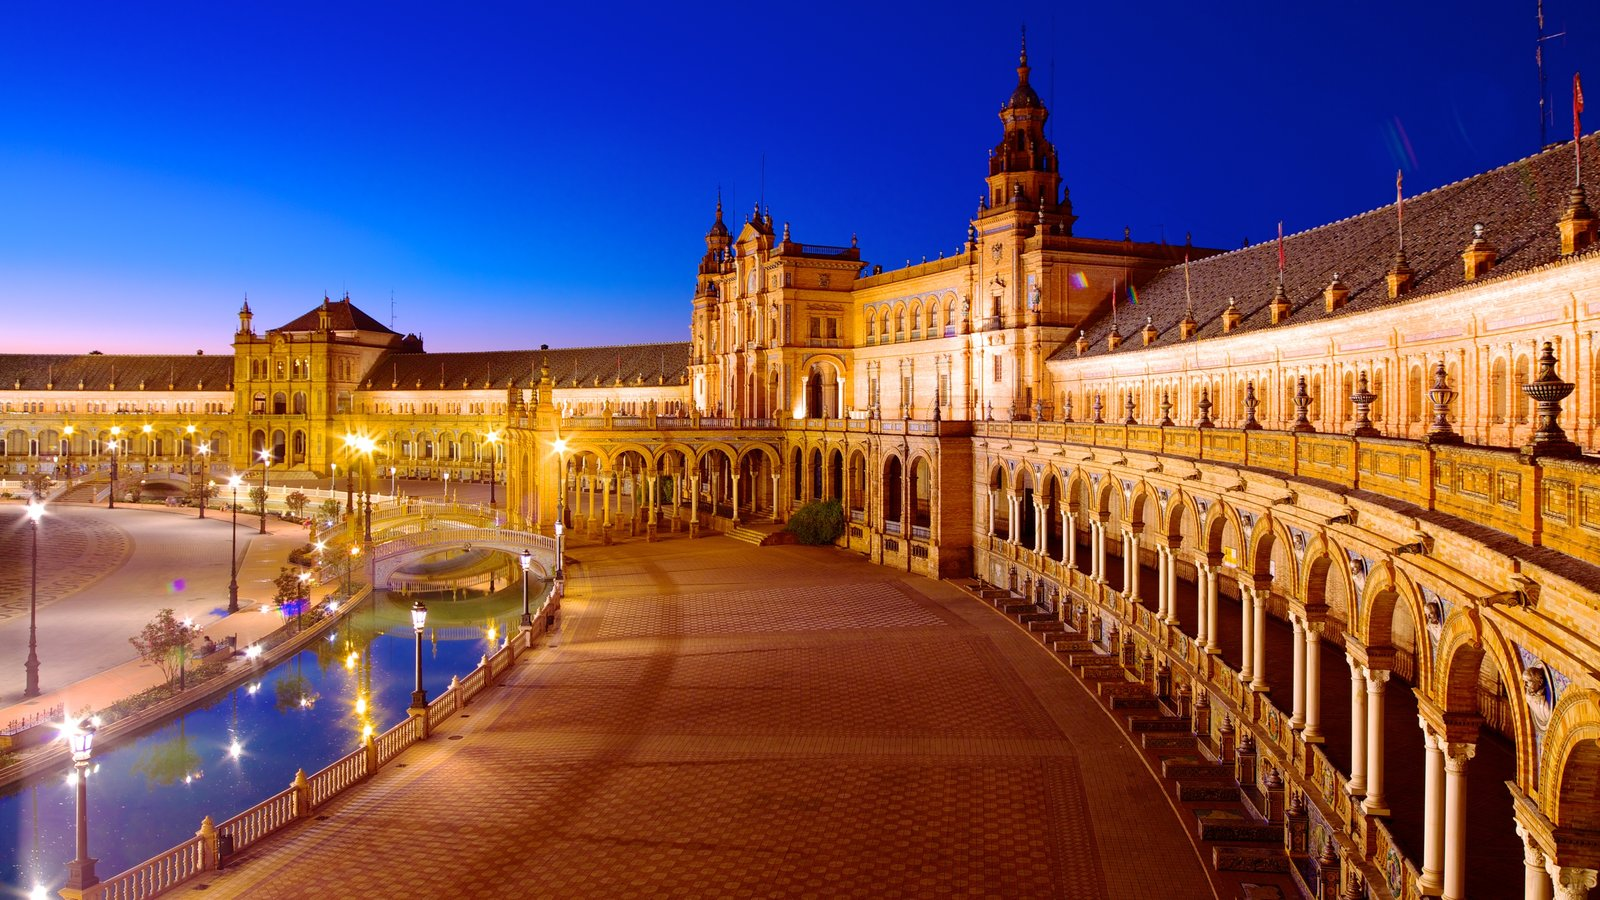 Plaza de Espana which includes a castle, heritage architecture and night scenes